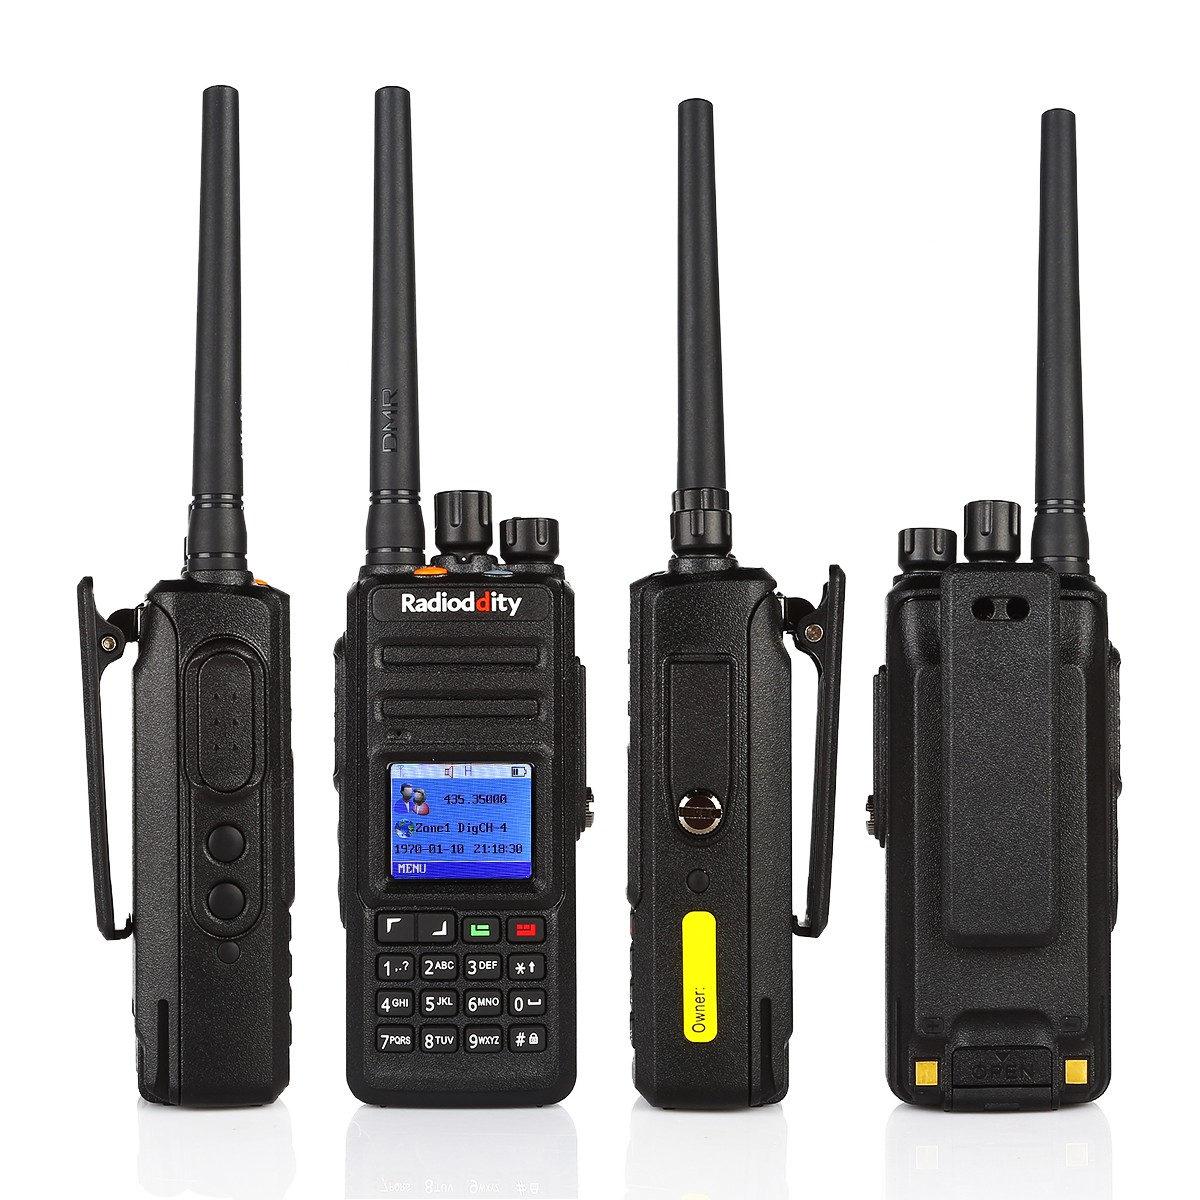 www-radioddity-com-radioddity-gd-55-uhf-waterproof-dmr-digital-radio-with-gps-function-10w-with-2800mah-lithium-polymer-li-po-battery-33